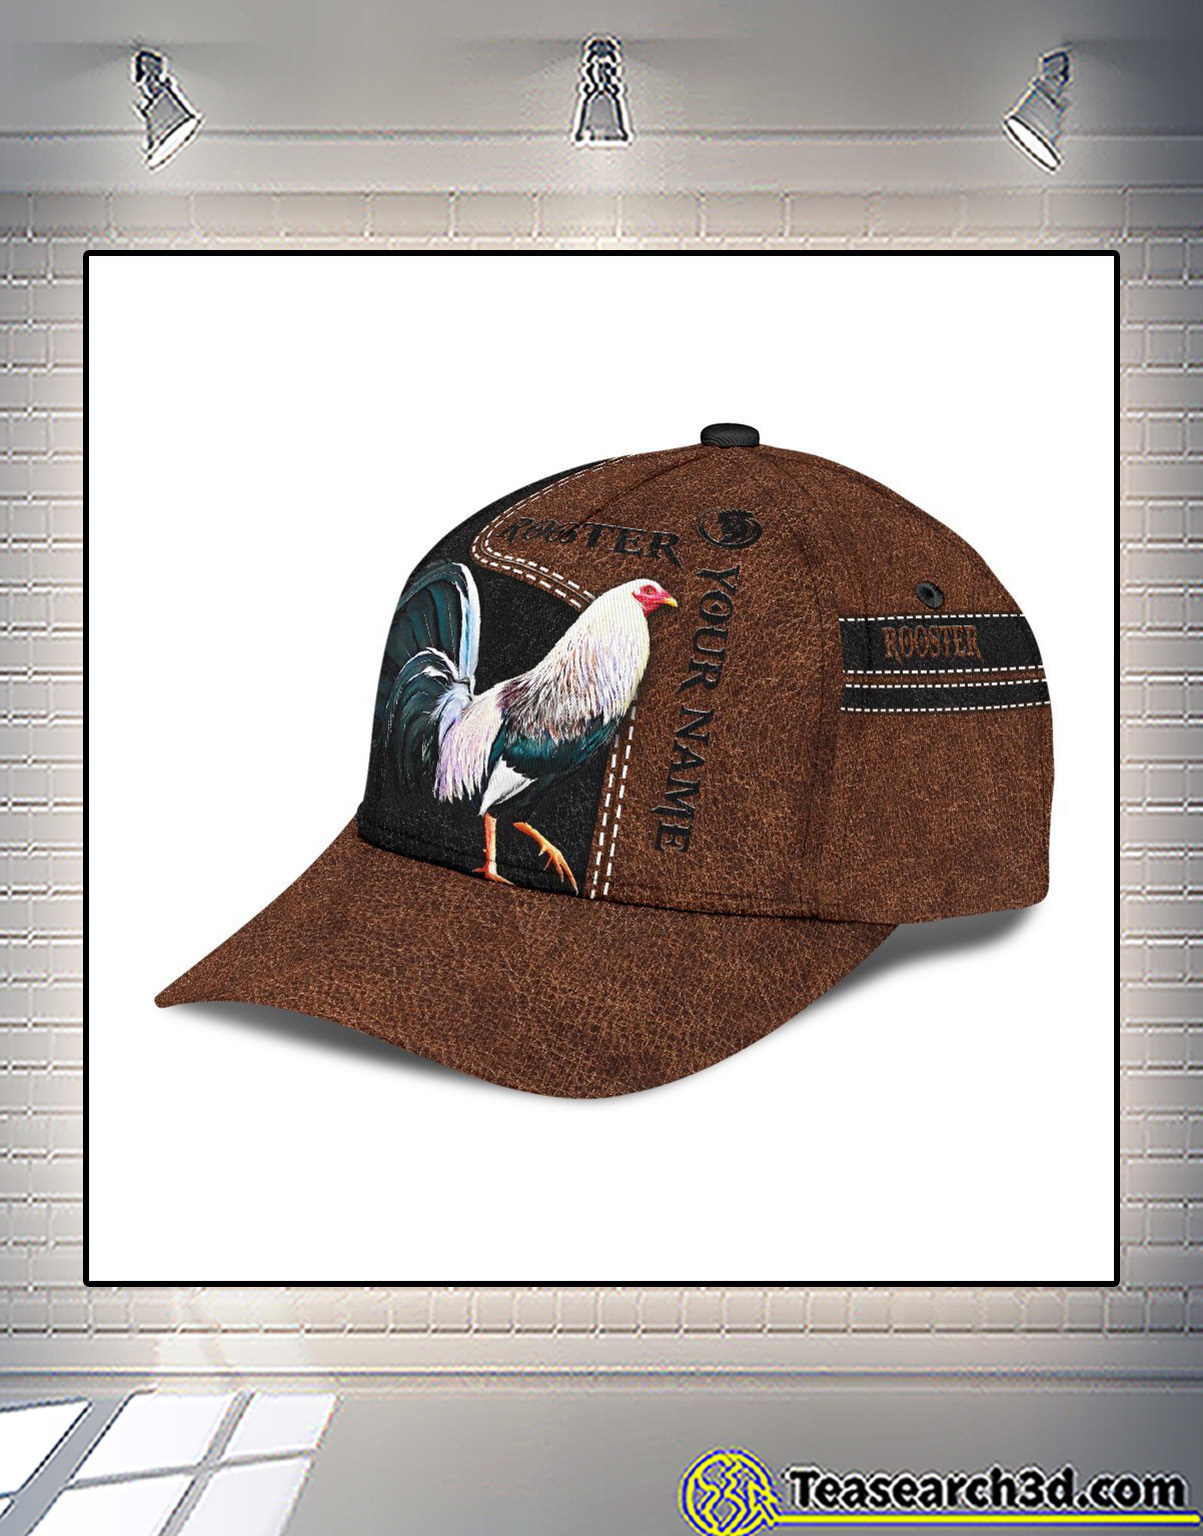 Personalized custom name rooster 3D printed classic cap 2